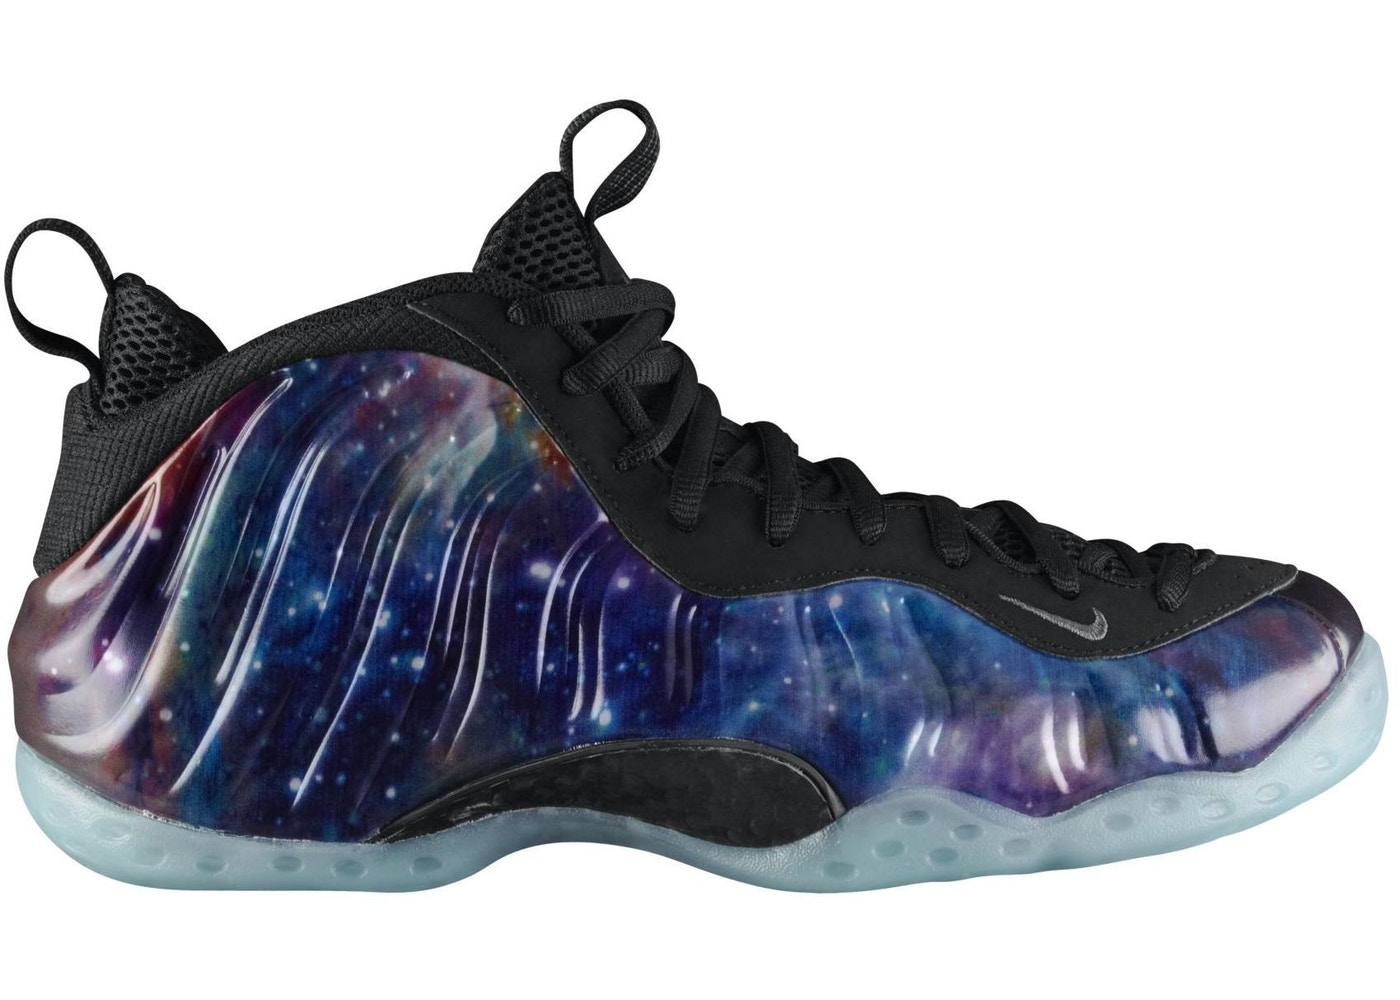 on sale 1d4d4 a1811 Air Foamposite One NRG Galaxy - 521286-800